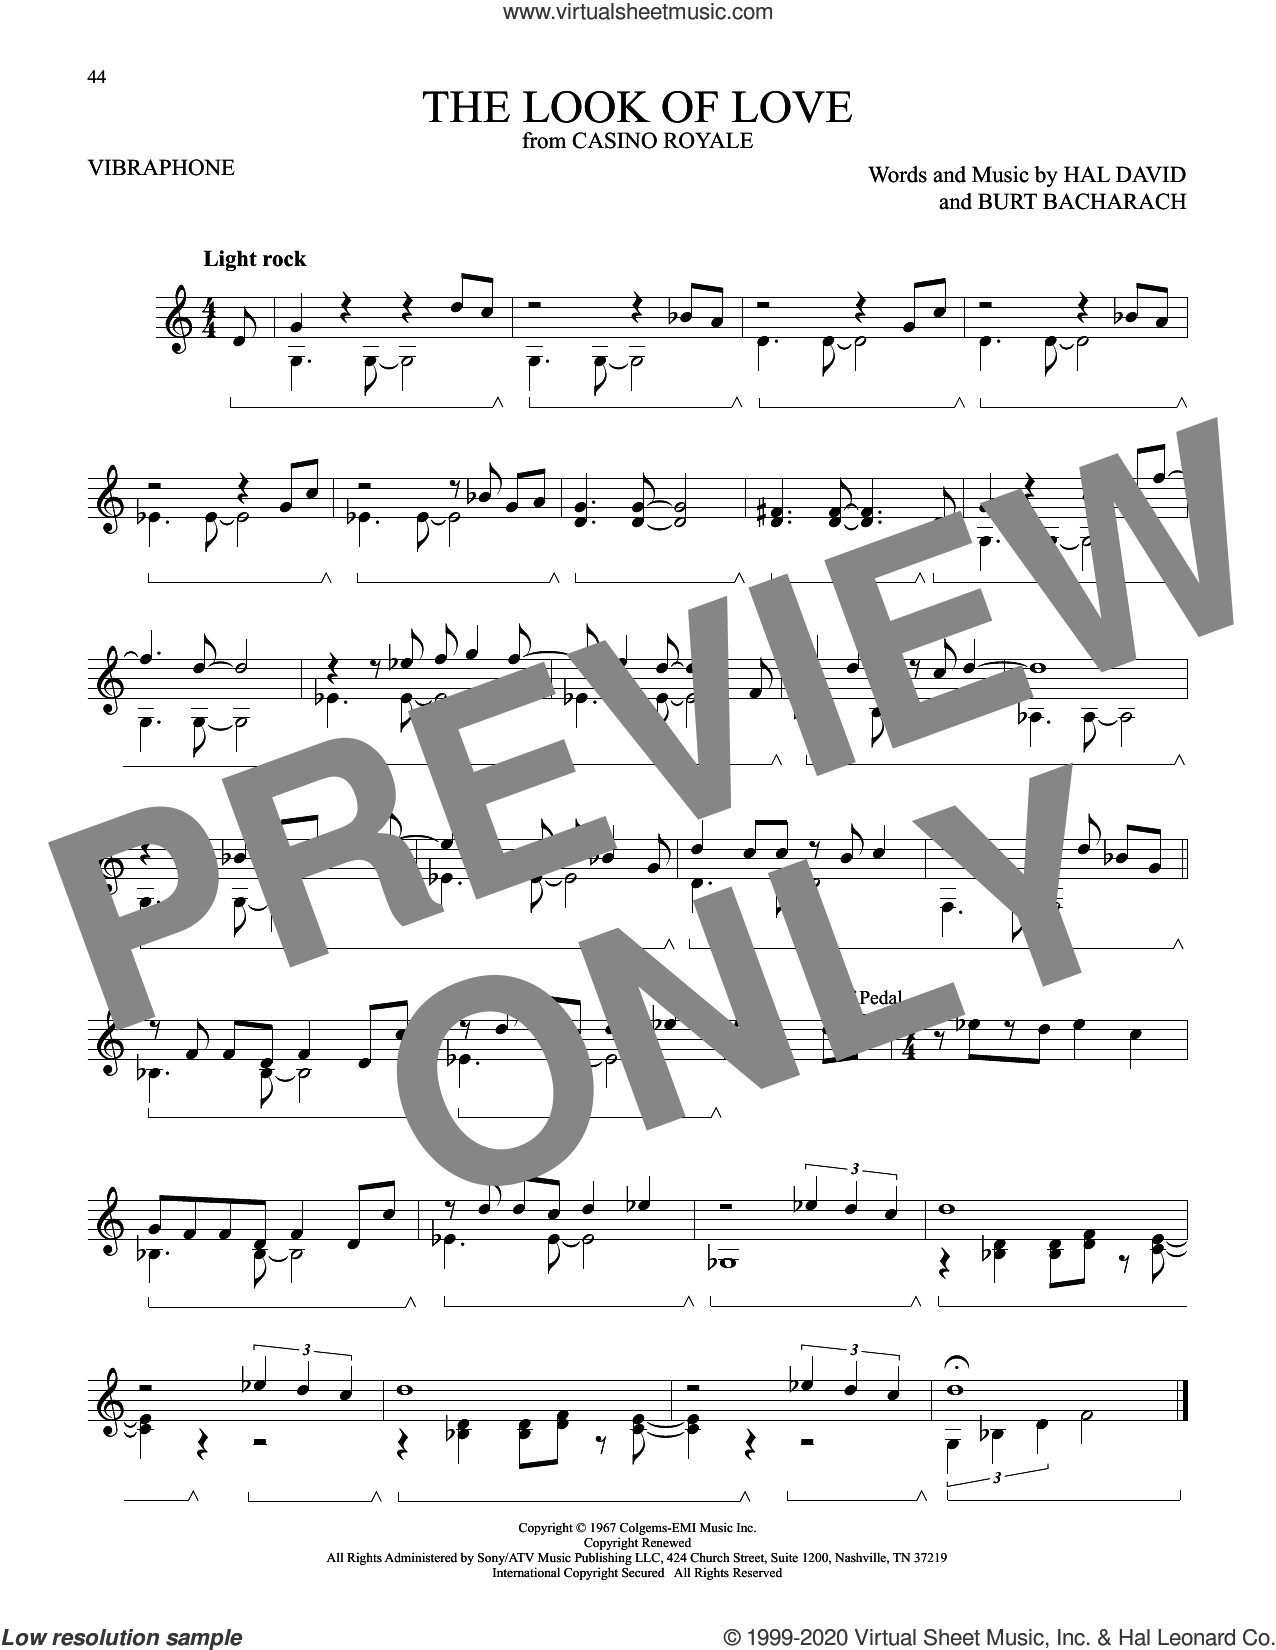 The Look Of Love sheet music for Vibraphone Solo by Burt Bacharach, Bacharach & David and Hal David, intermediate skill level